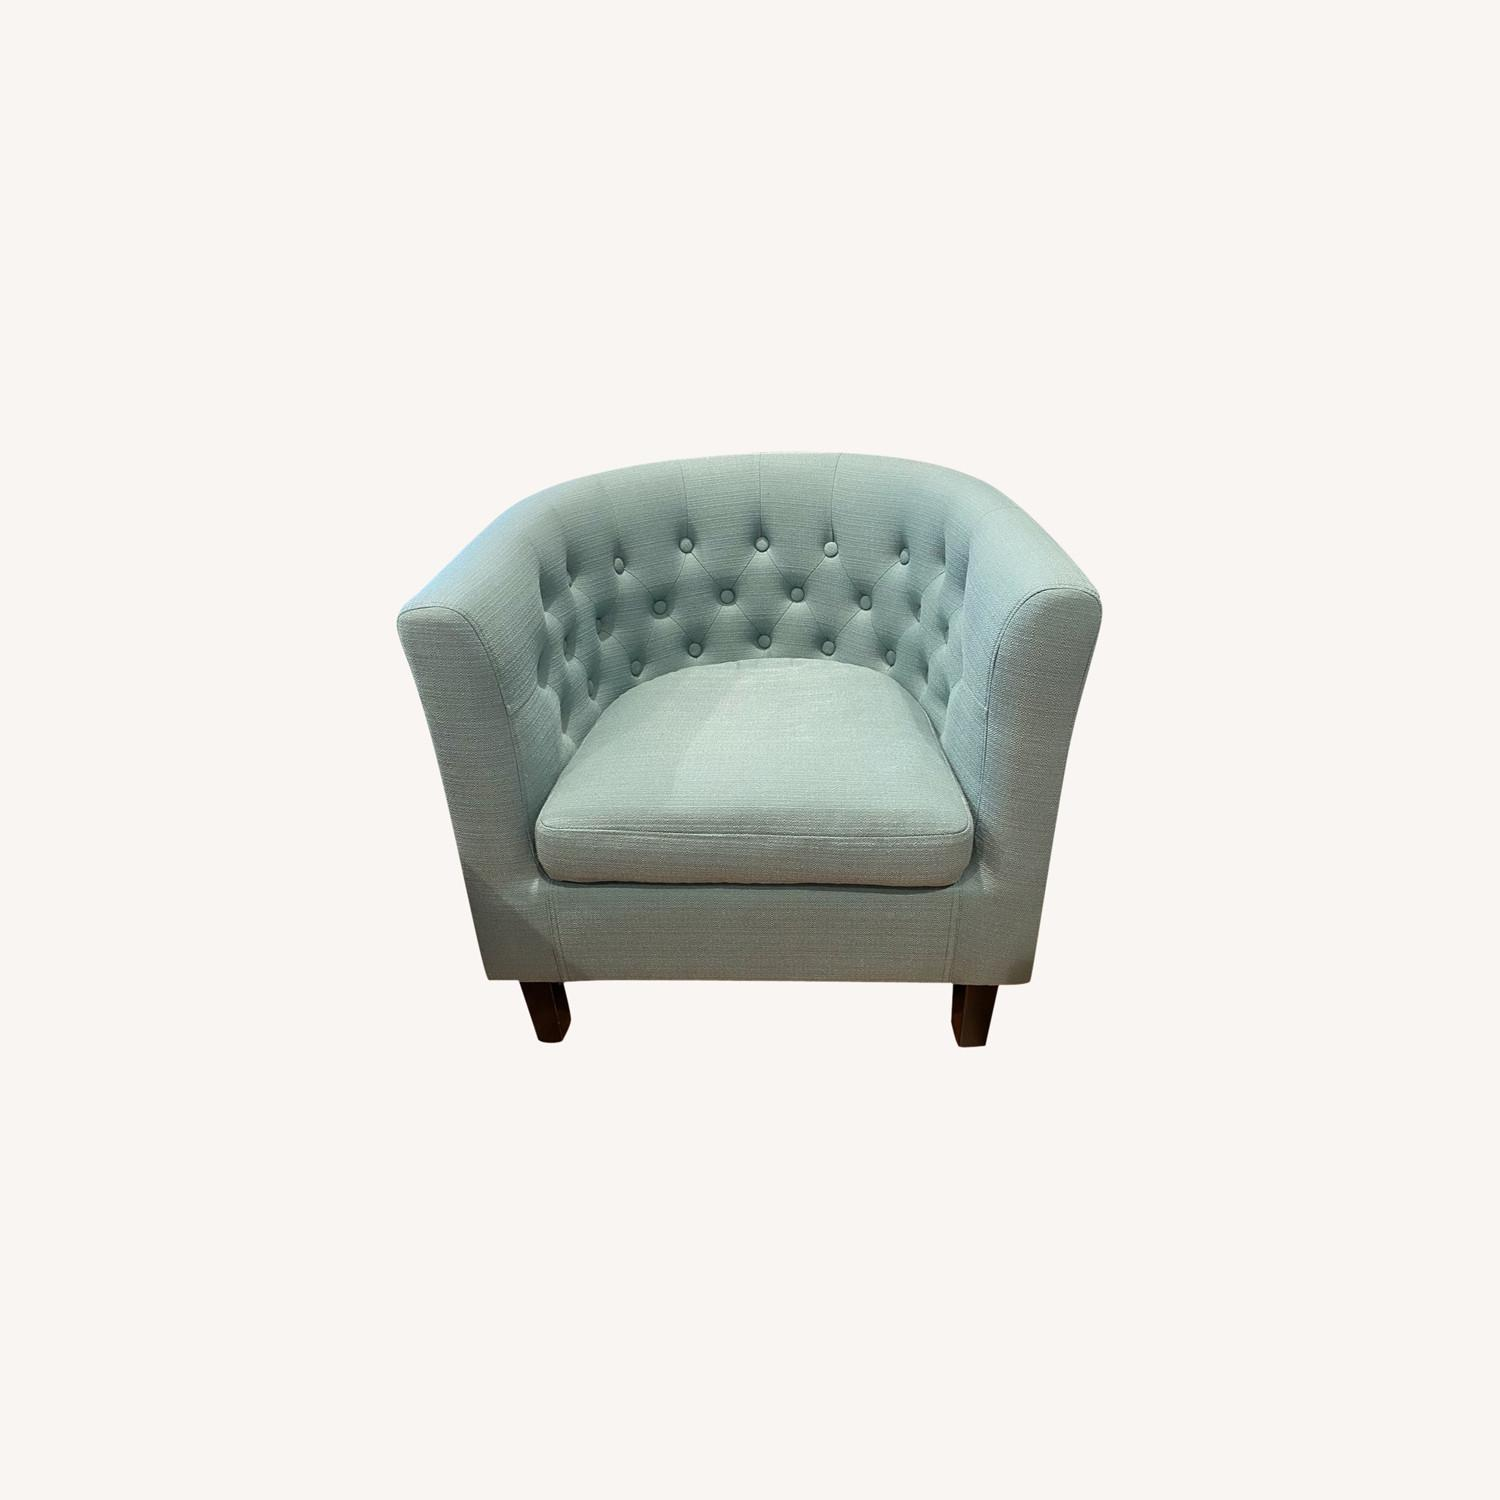 Wayfair Accent Chair Teal - image-0